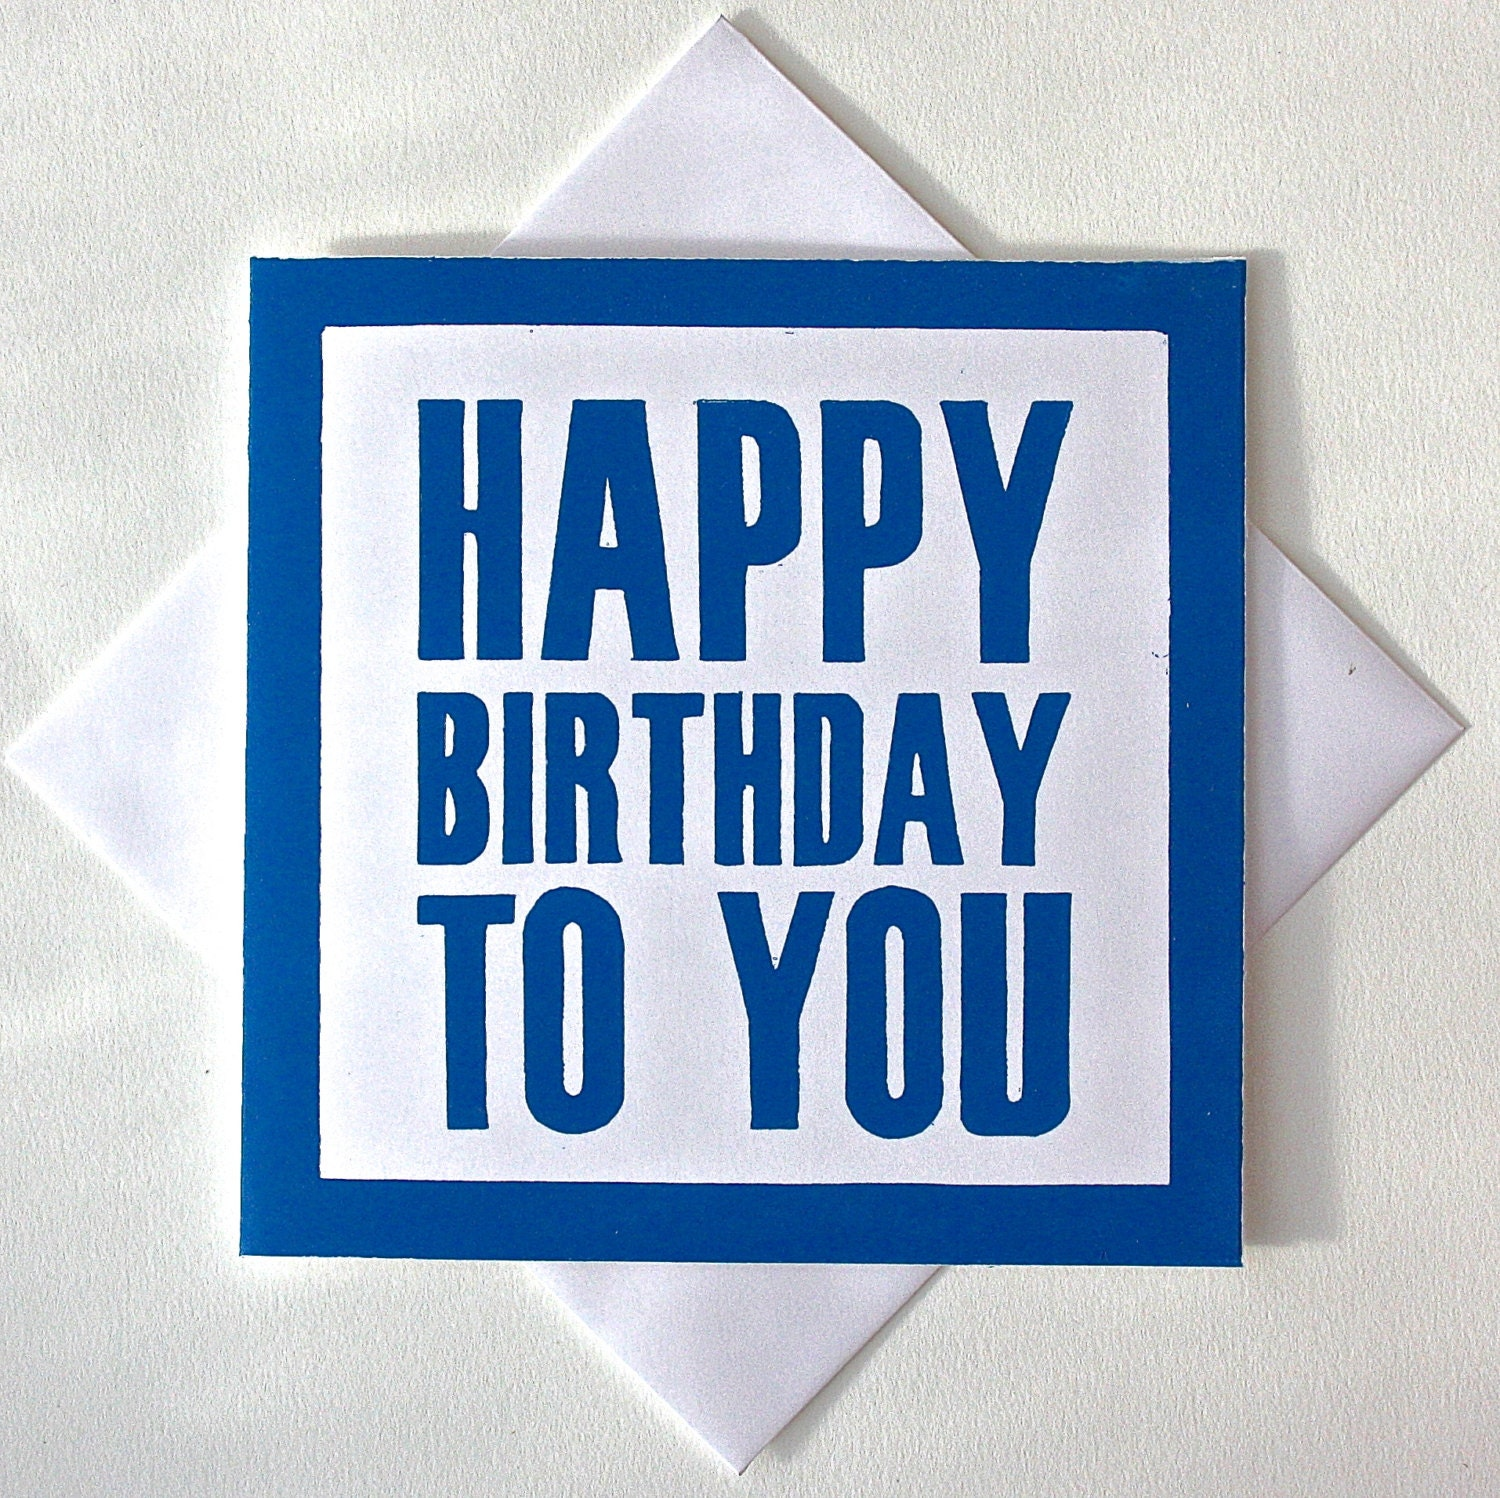 Happy Birthday Card For Him. Lino Print Greetings Card. Blue Card For ...